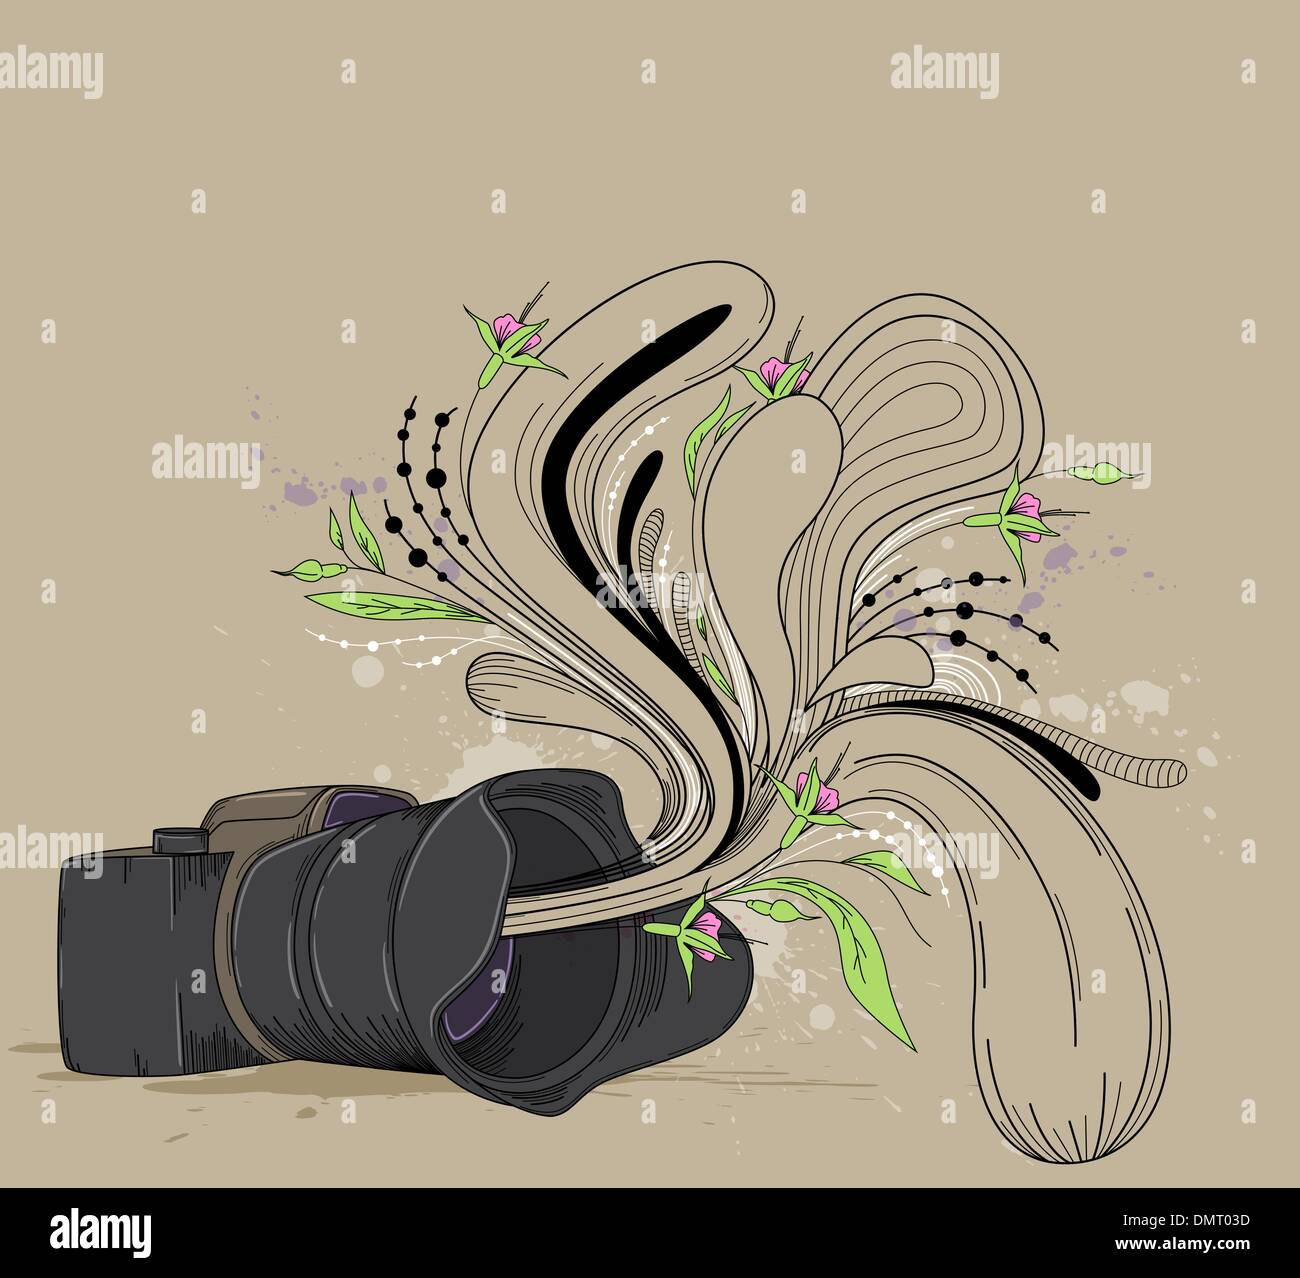 Abstract  background with camera - Stock Image